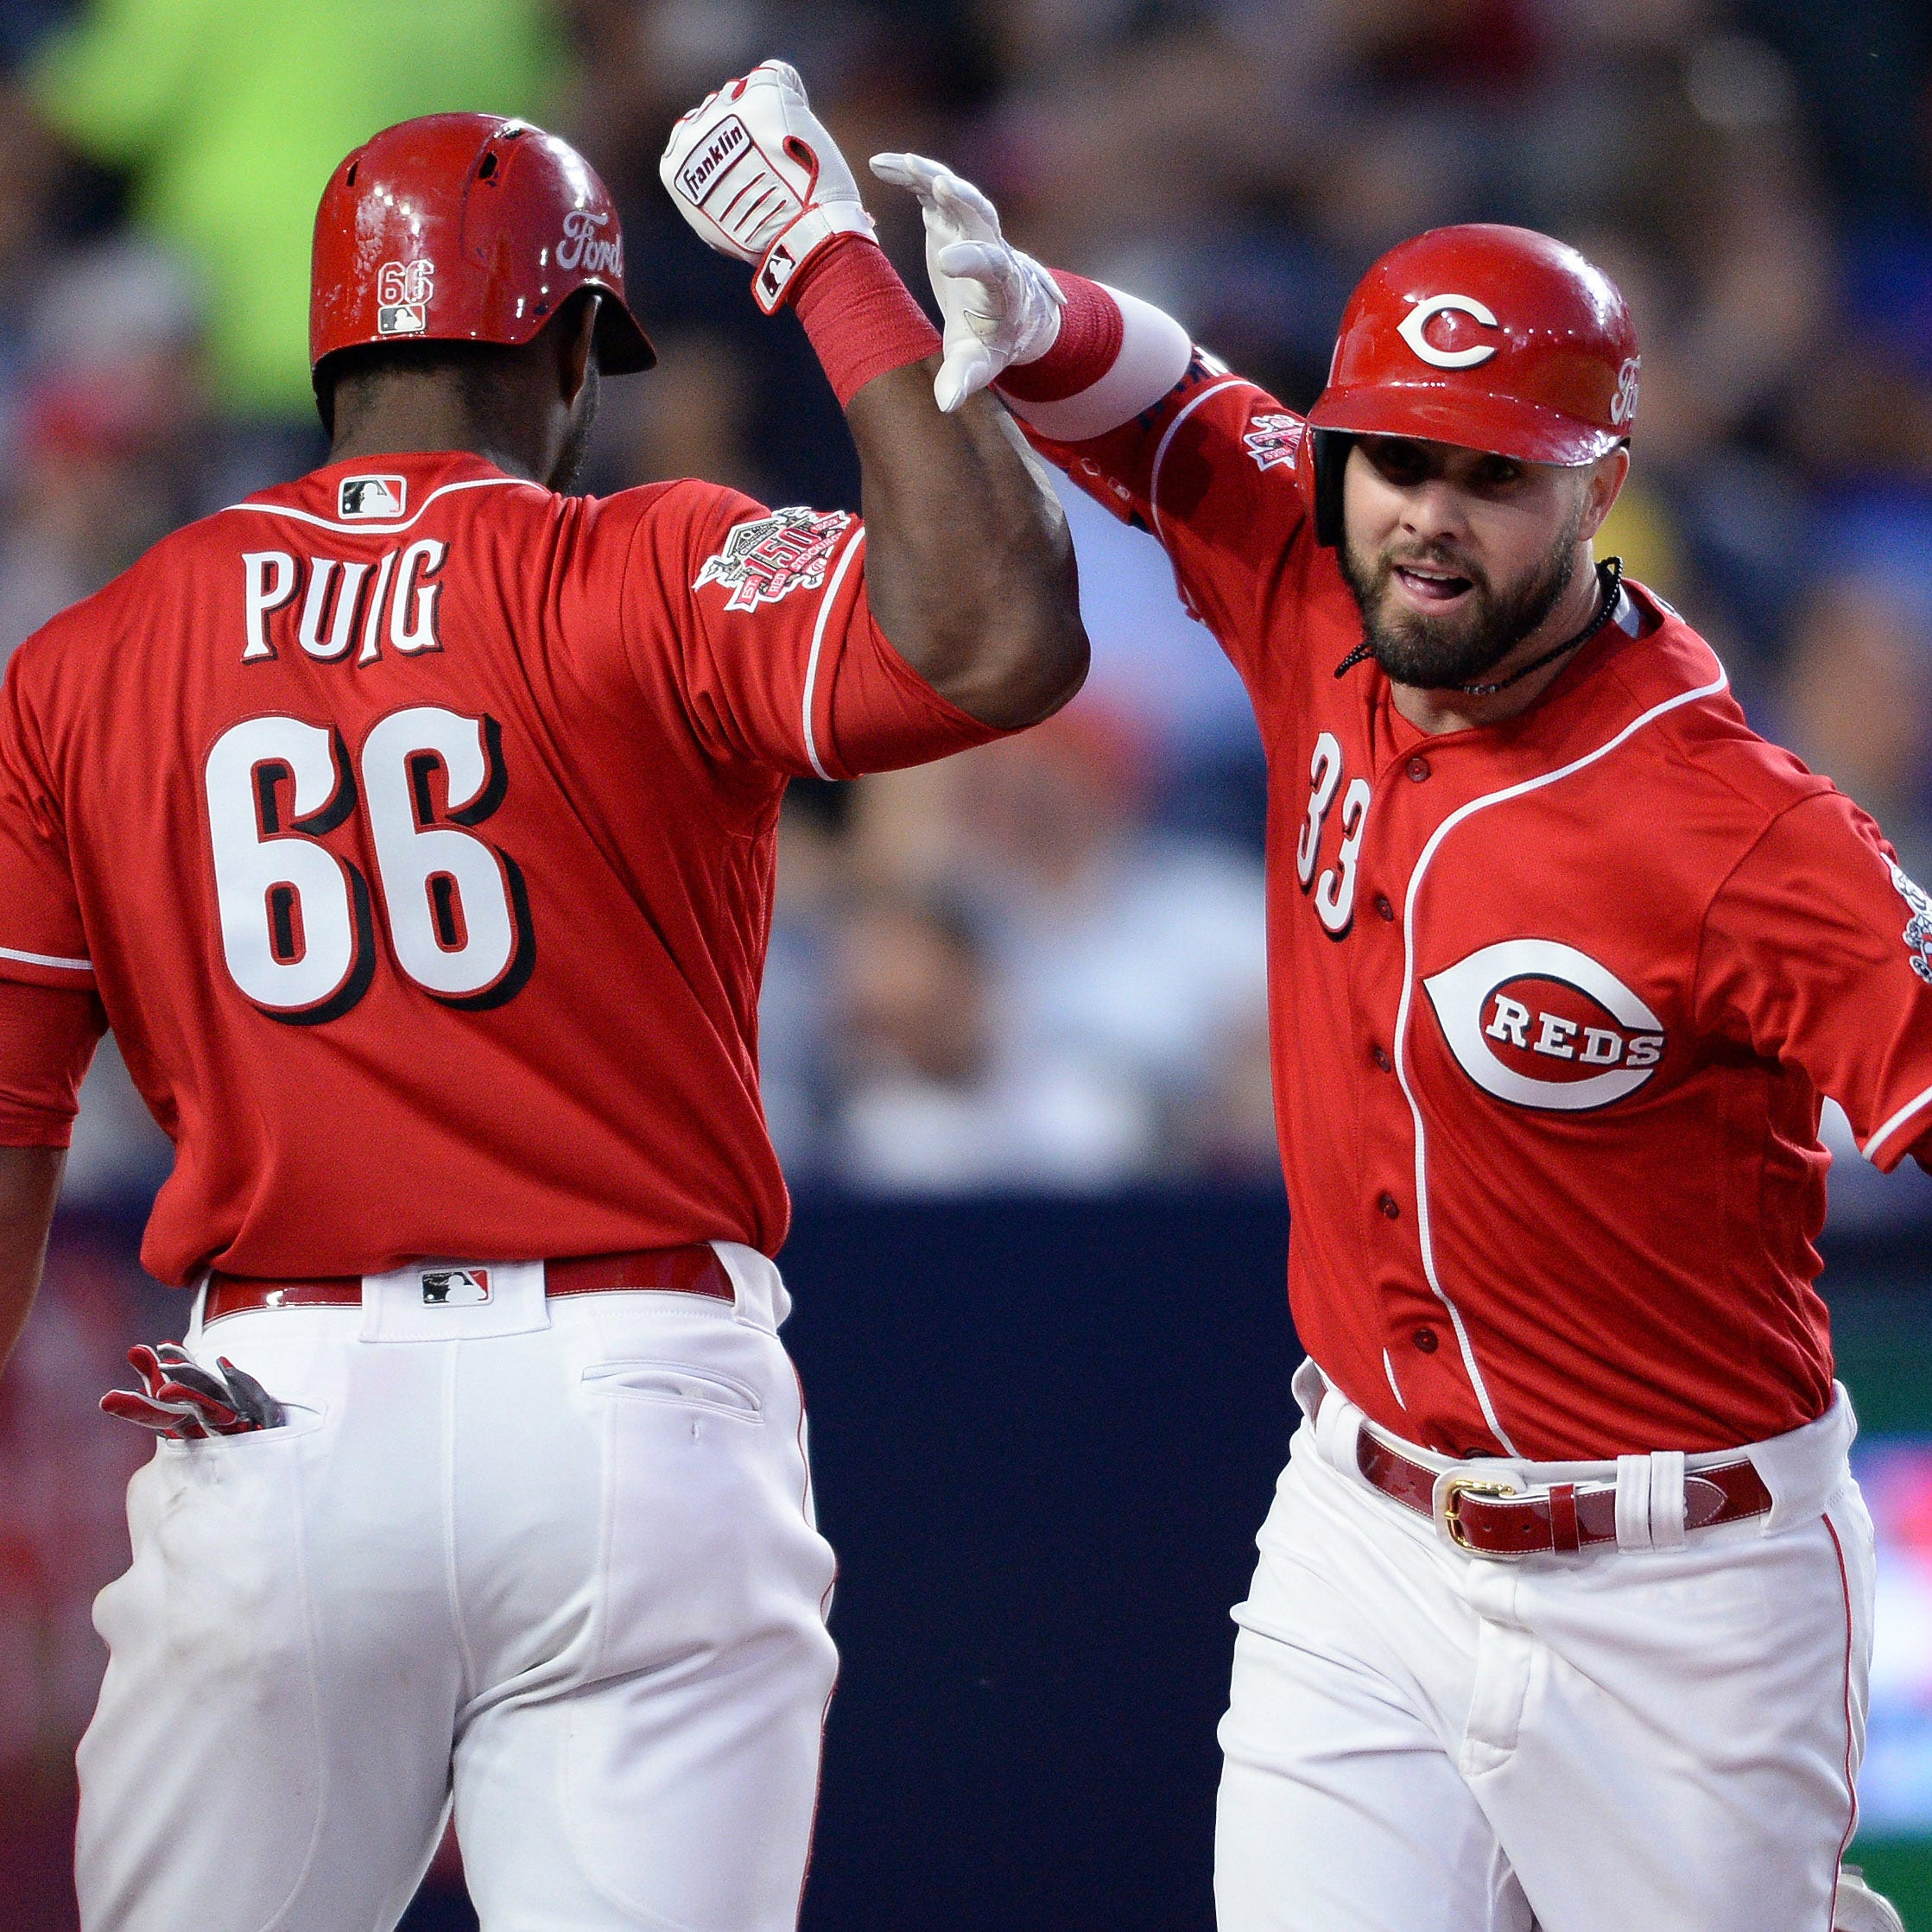 Jesse Winker, Derek Dietrich power Cincinnati Reds to win in Mexico against St. Louis Cardinals